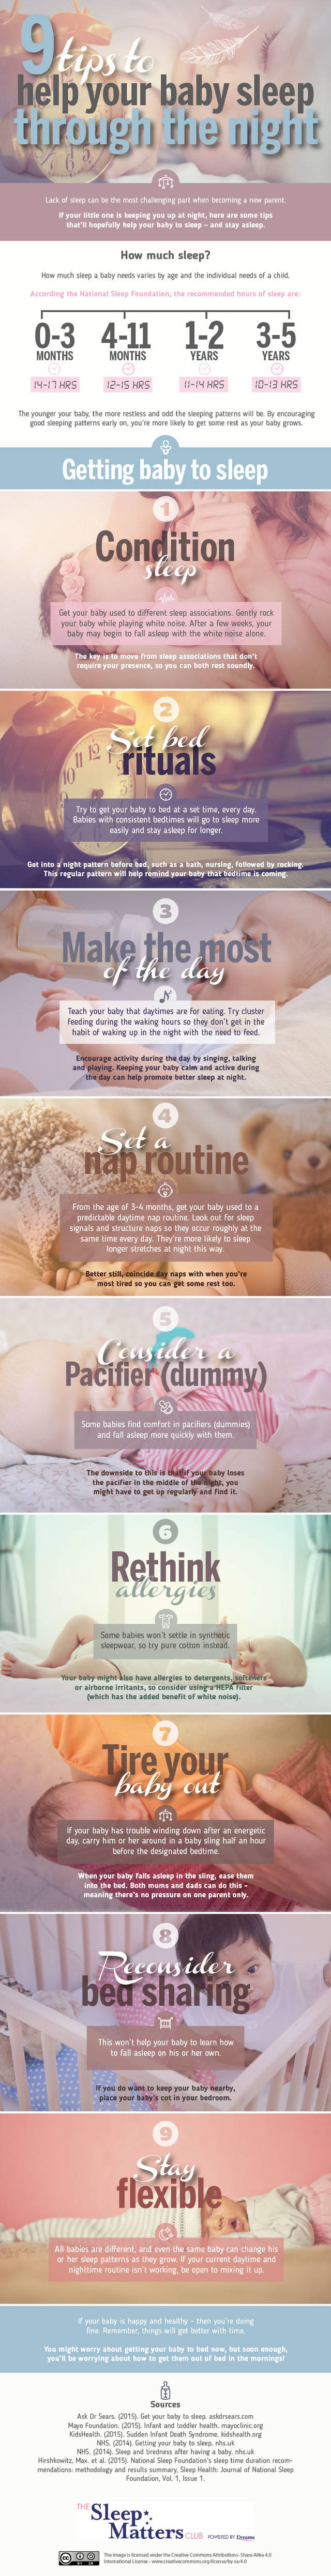 9 tips to help your baby sleep through the night